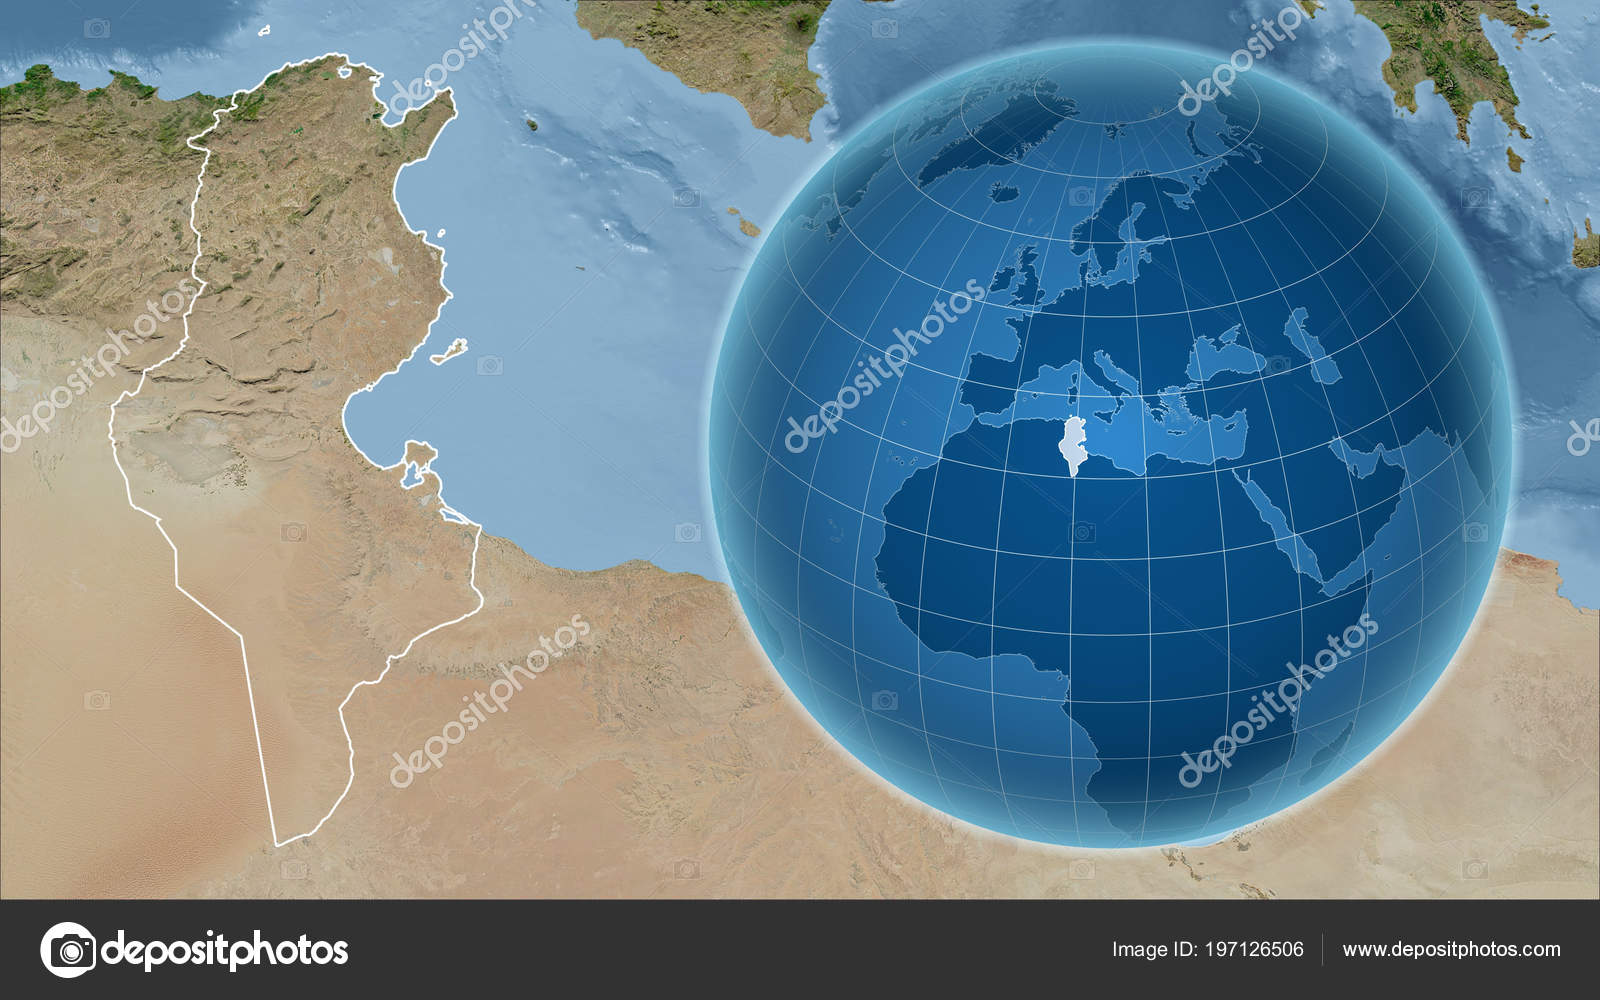 tunisia globe shape country zoomed map its outline satellite imagery